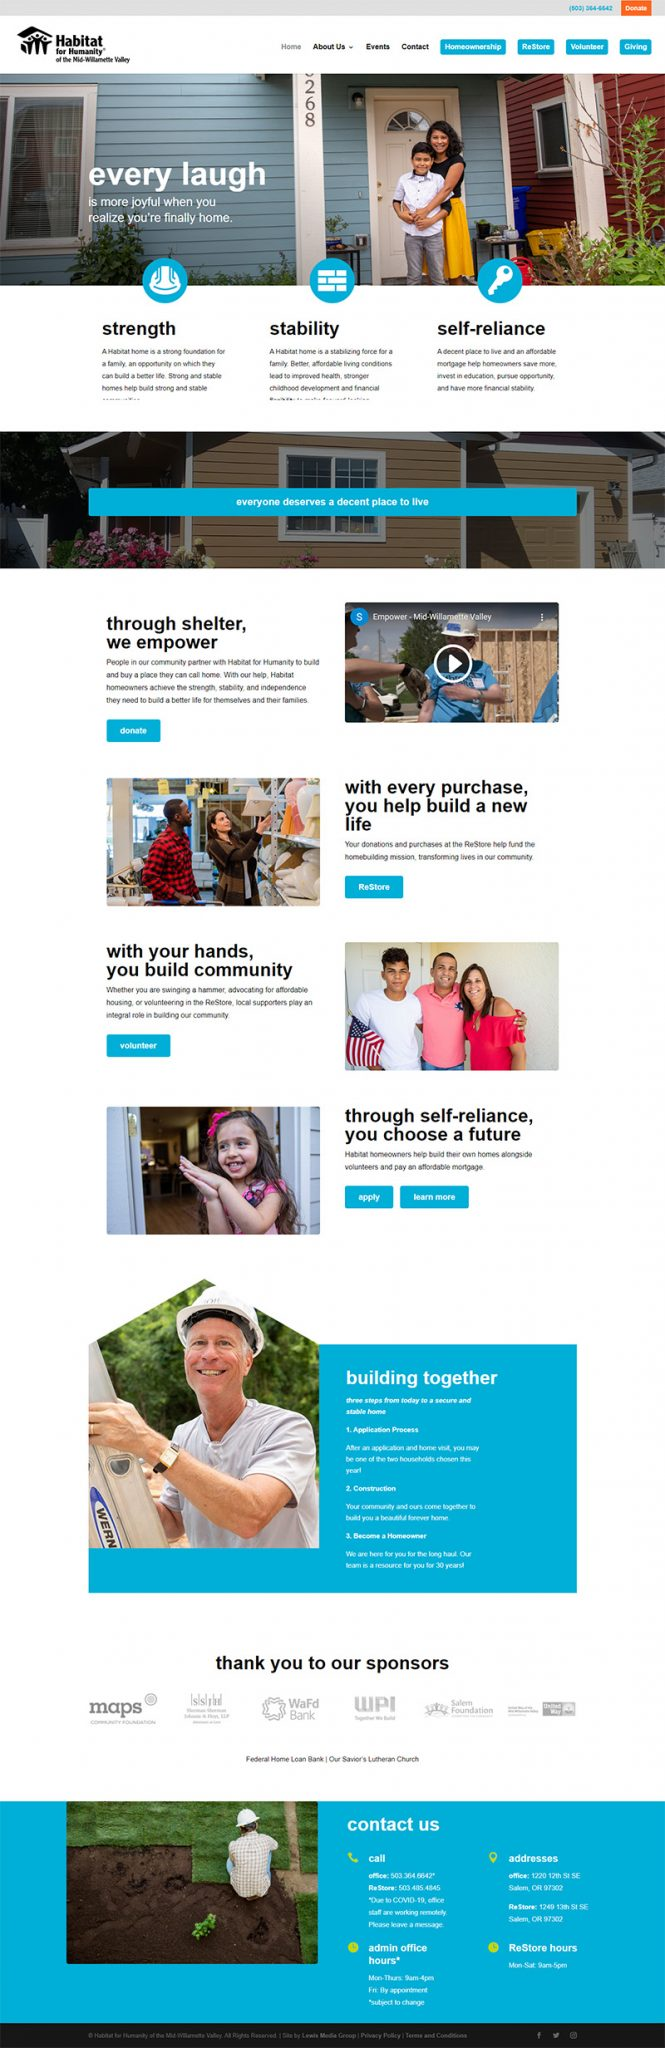 Habitat for Humanity of the Mid-Willamette Valley Home page after redesign